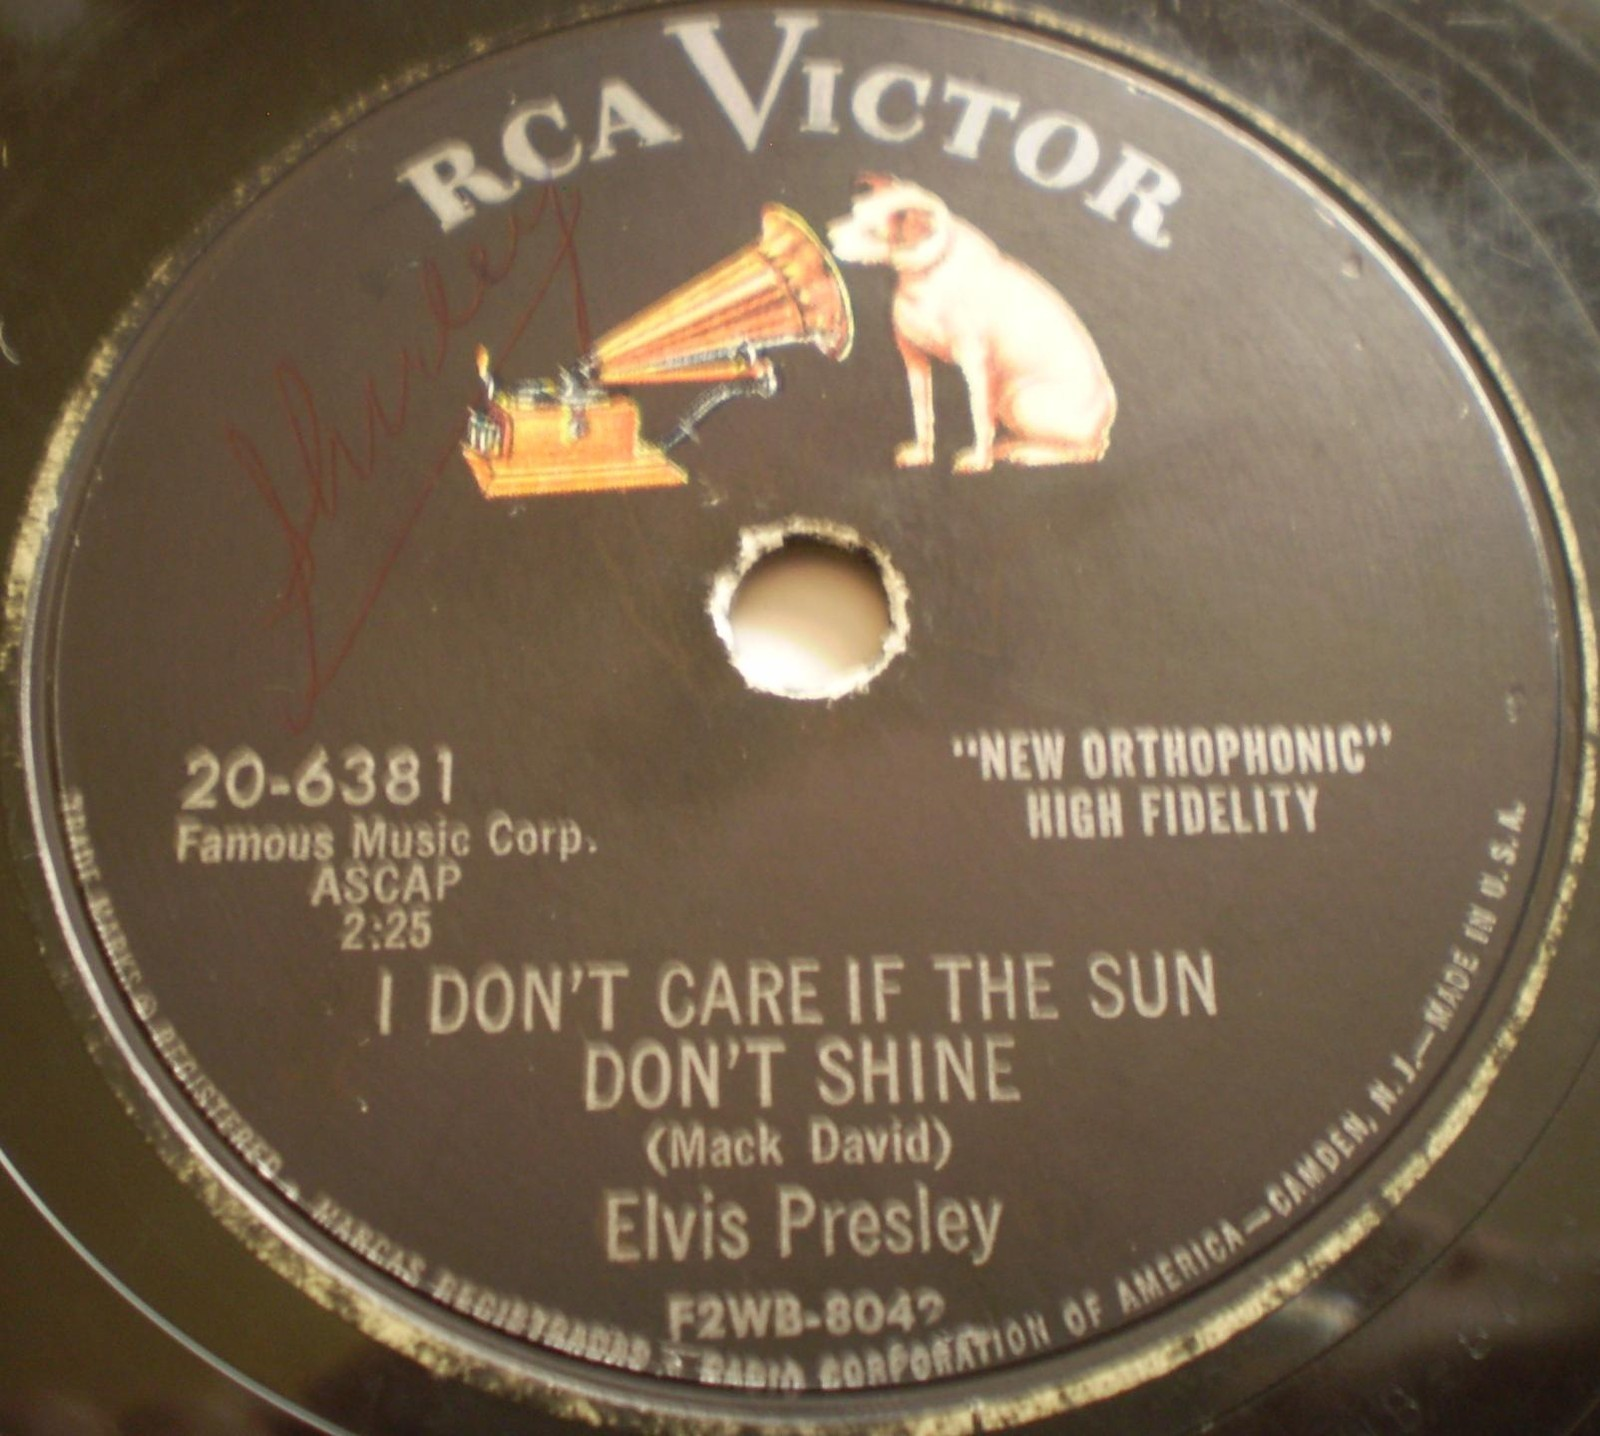 Good Rockin' Tonight / I Don't Care If The Sun Don't Shine 20-6381bd2bv1